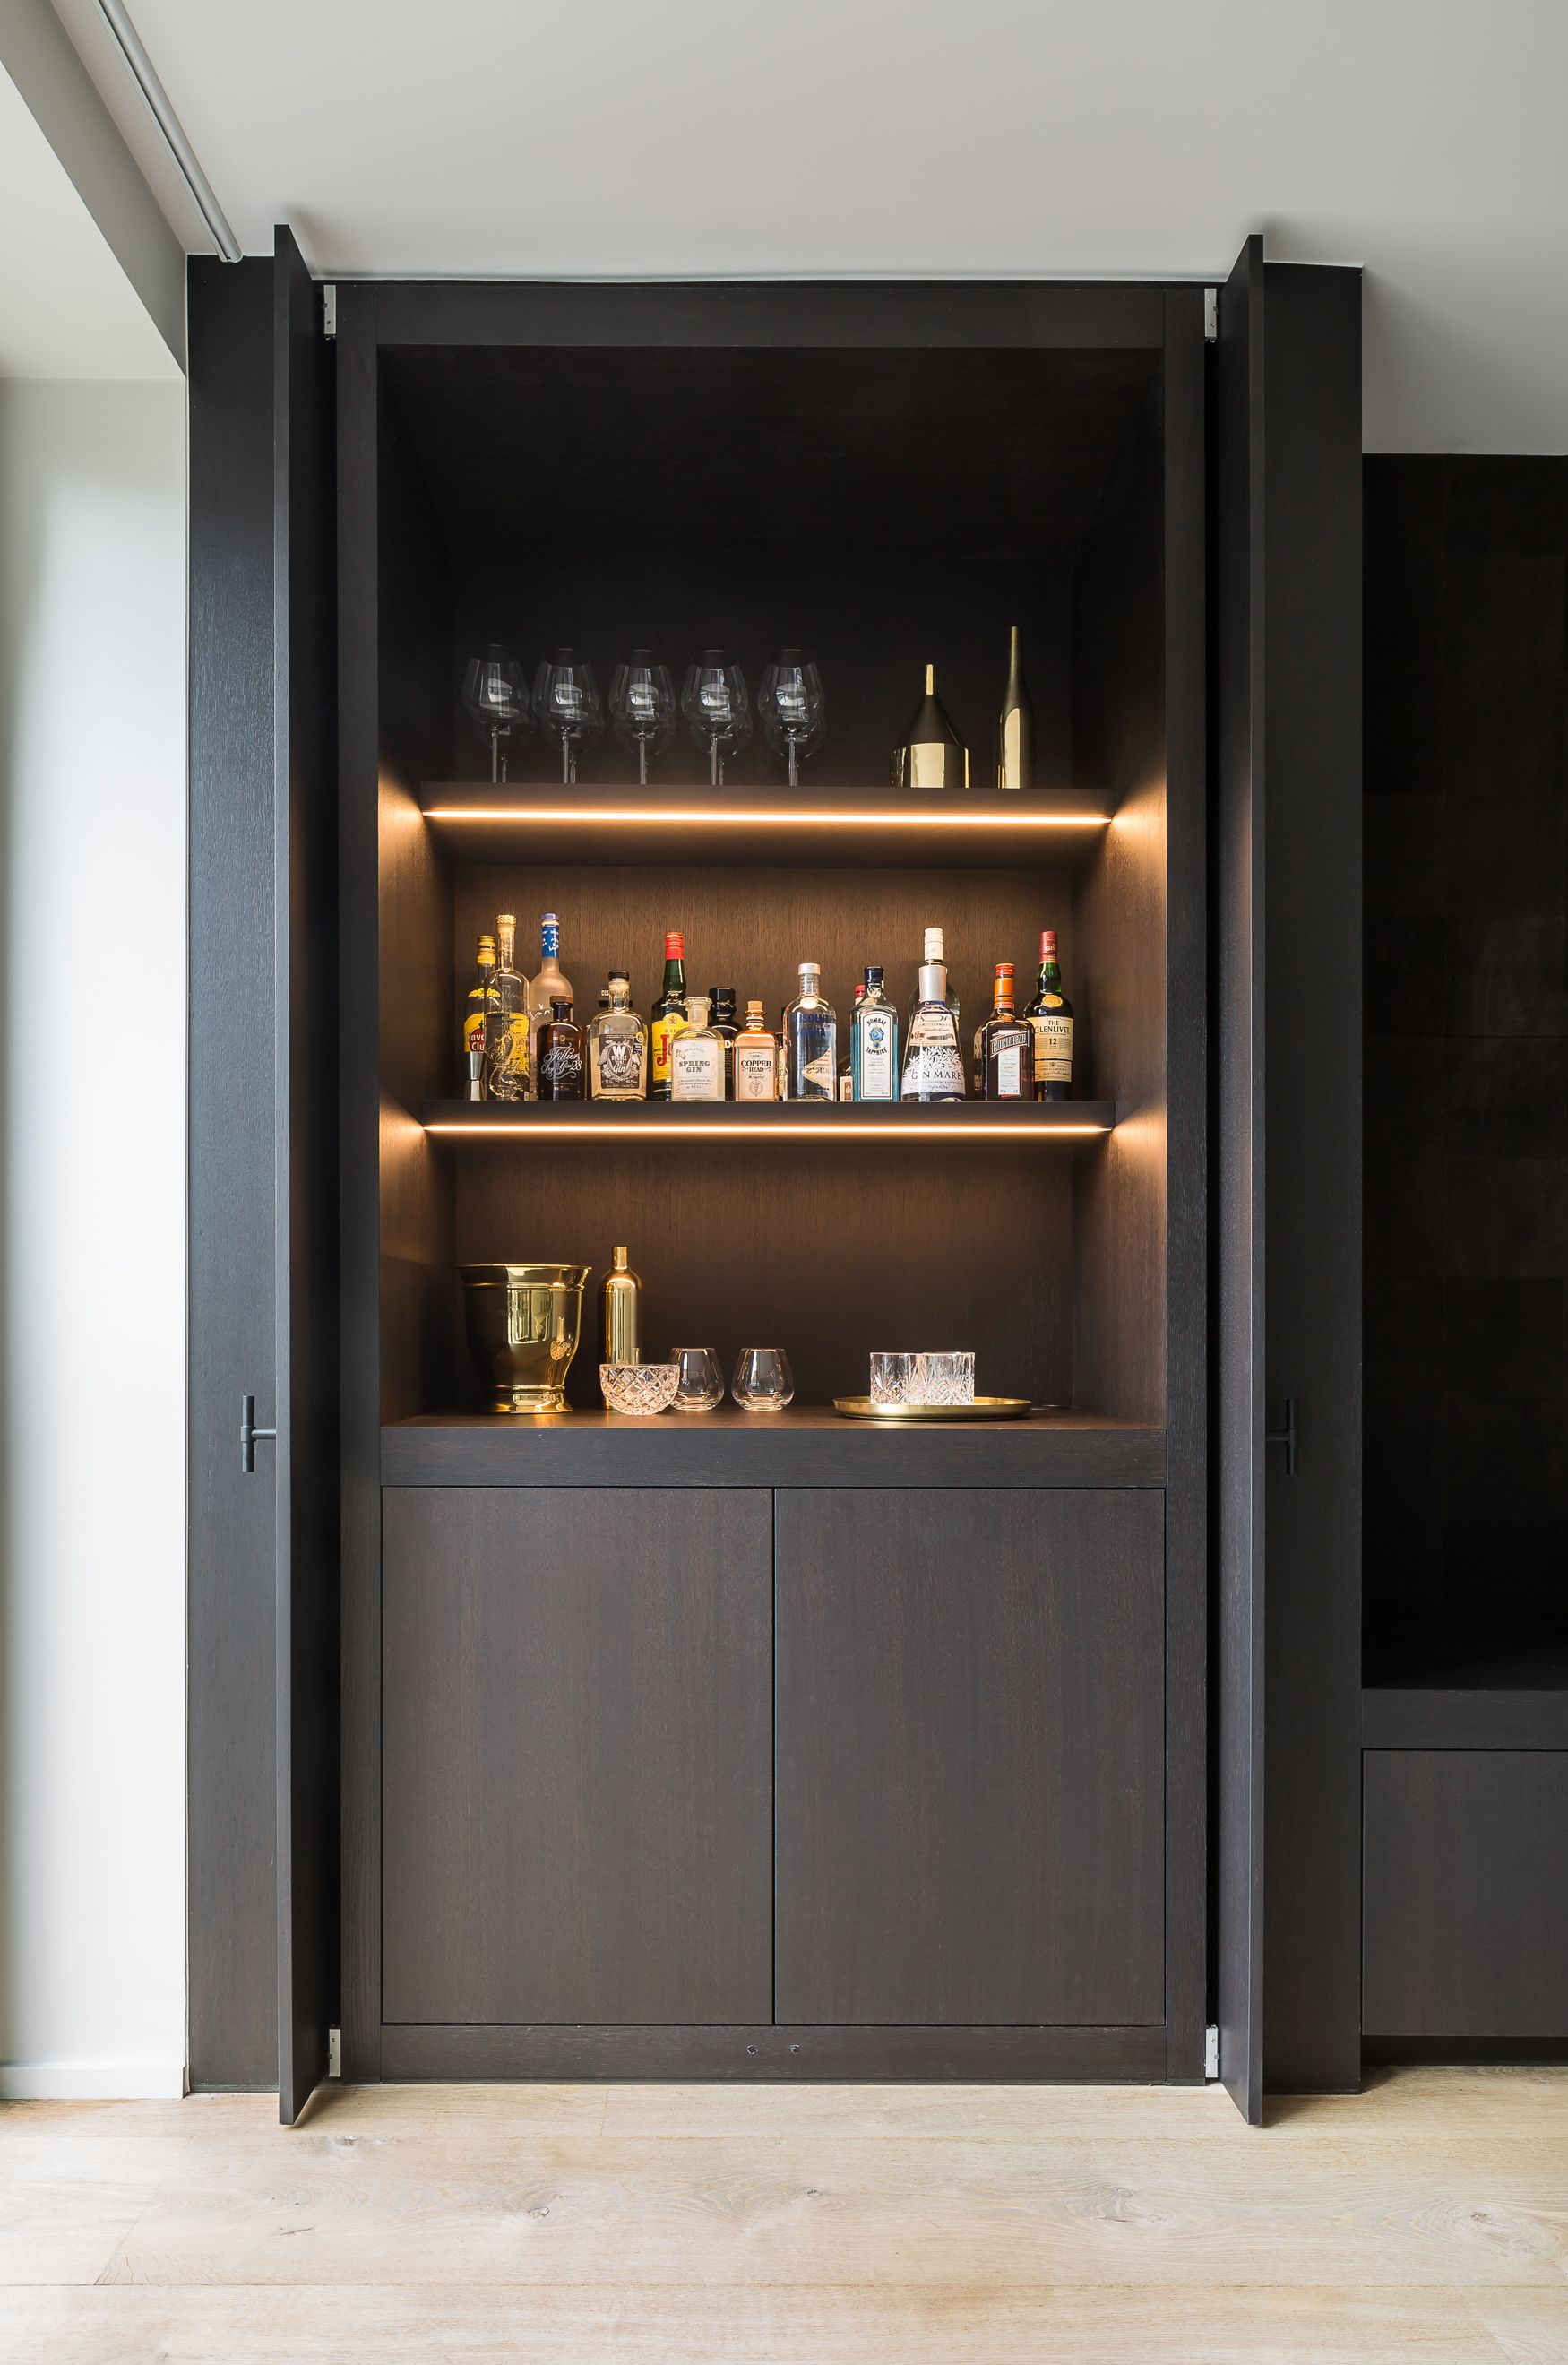 Pivot Sliding Doors Conceal The Bar Interior Barn Doors